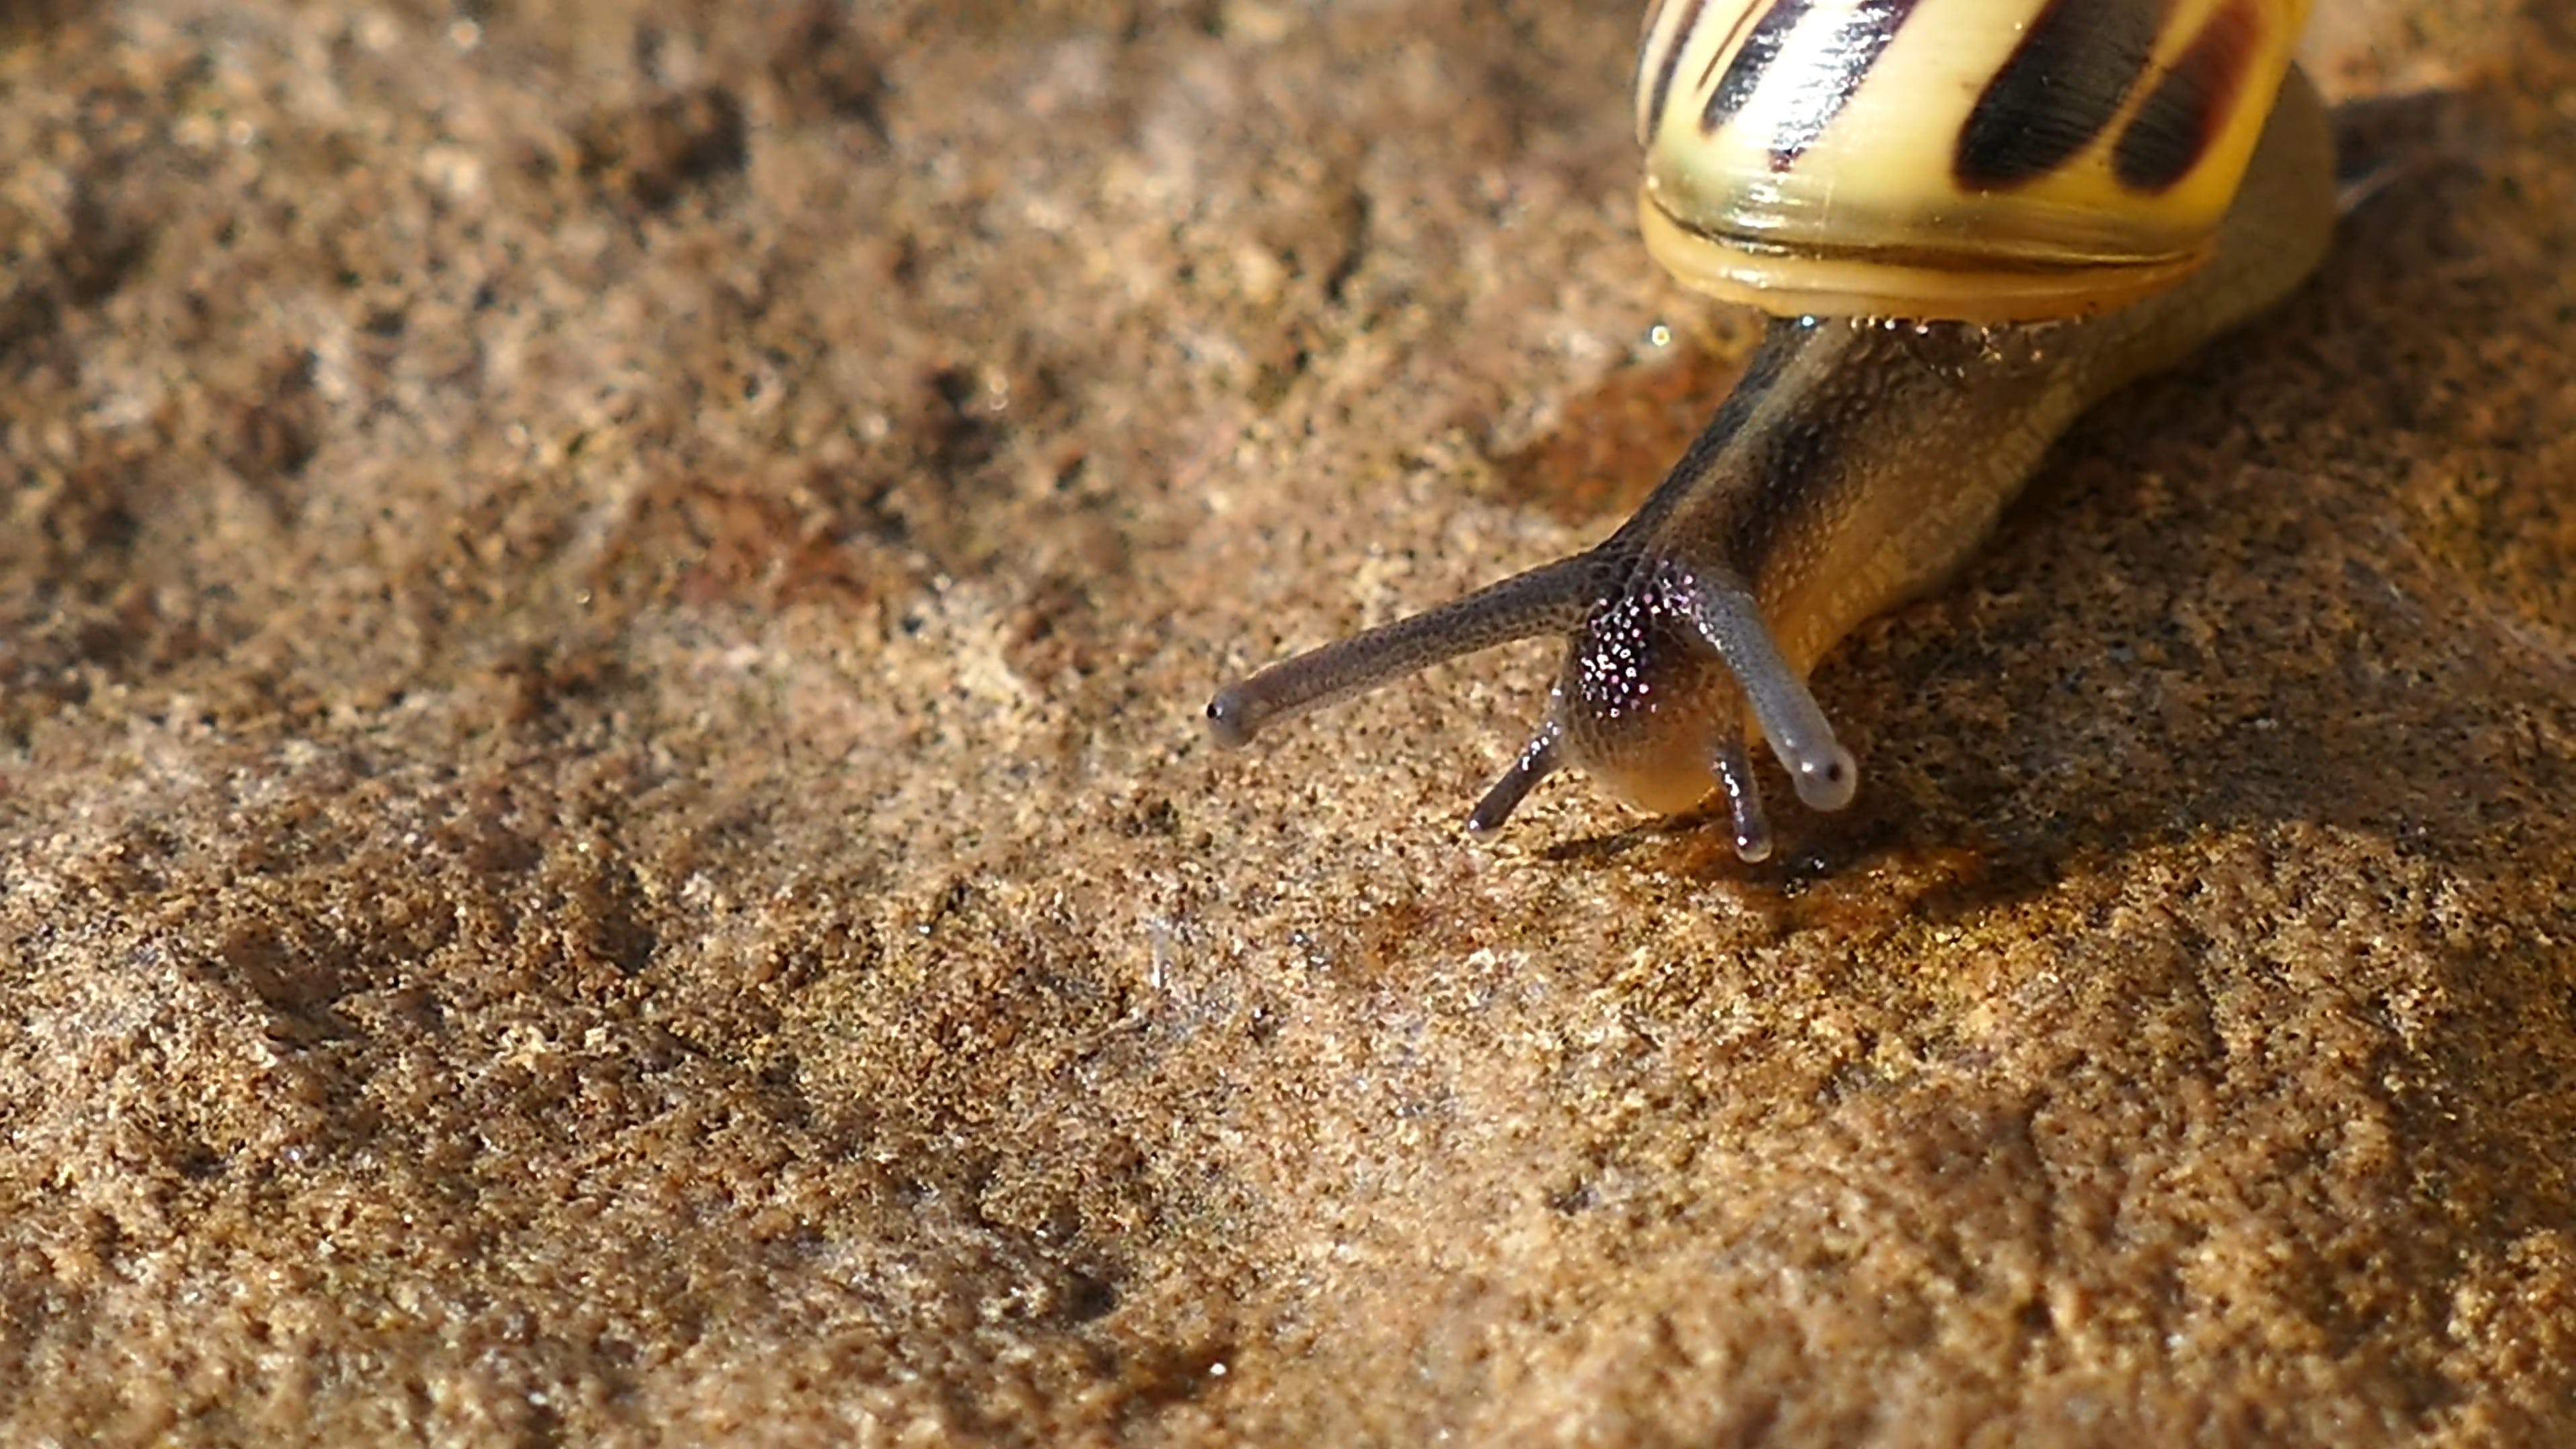 Close-Up Video Of Snail